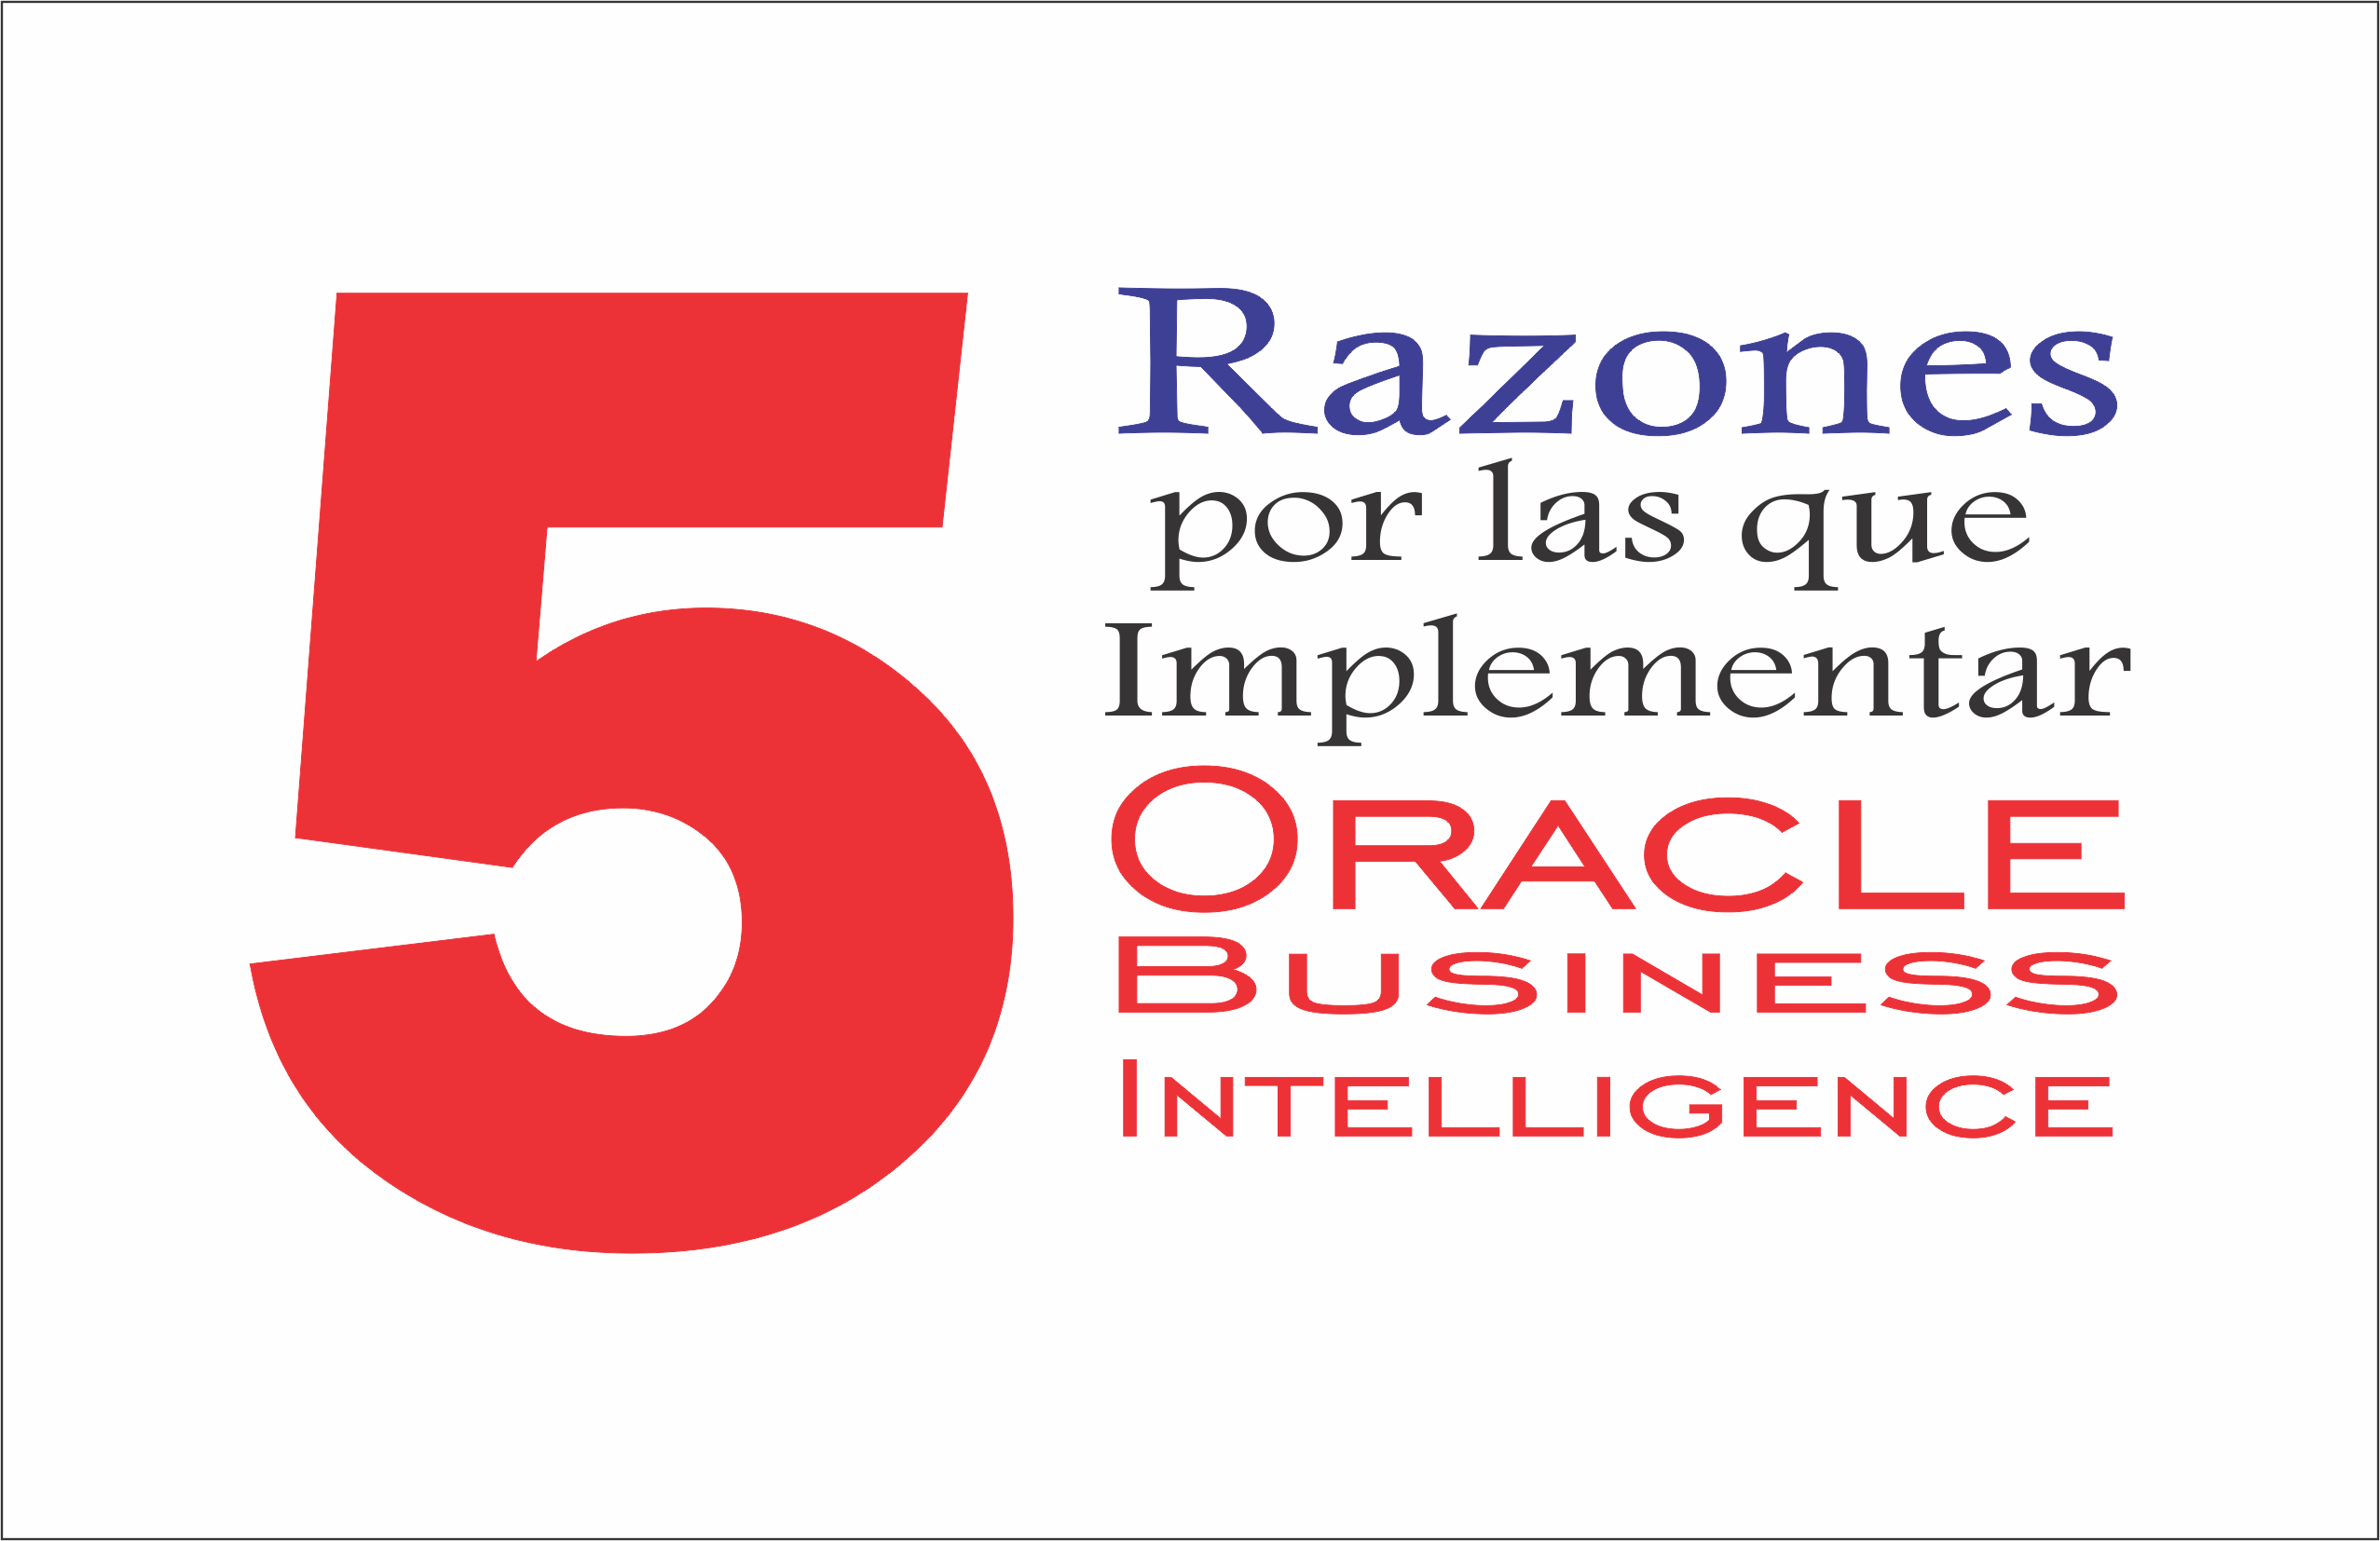 5 Razones por las que Implementar Oracle Business Intelligence